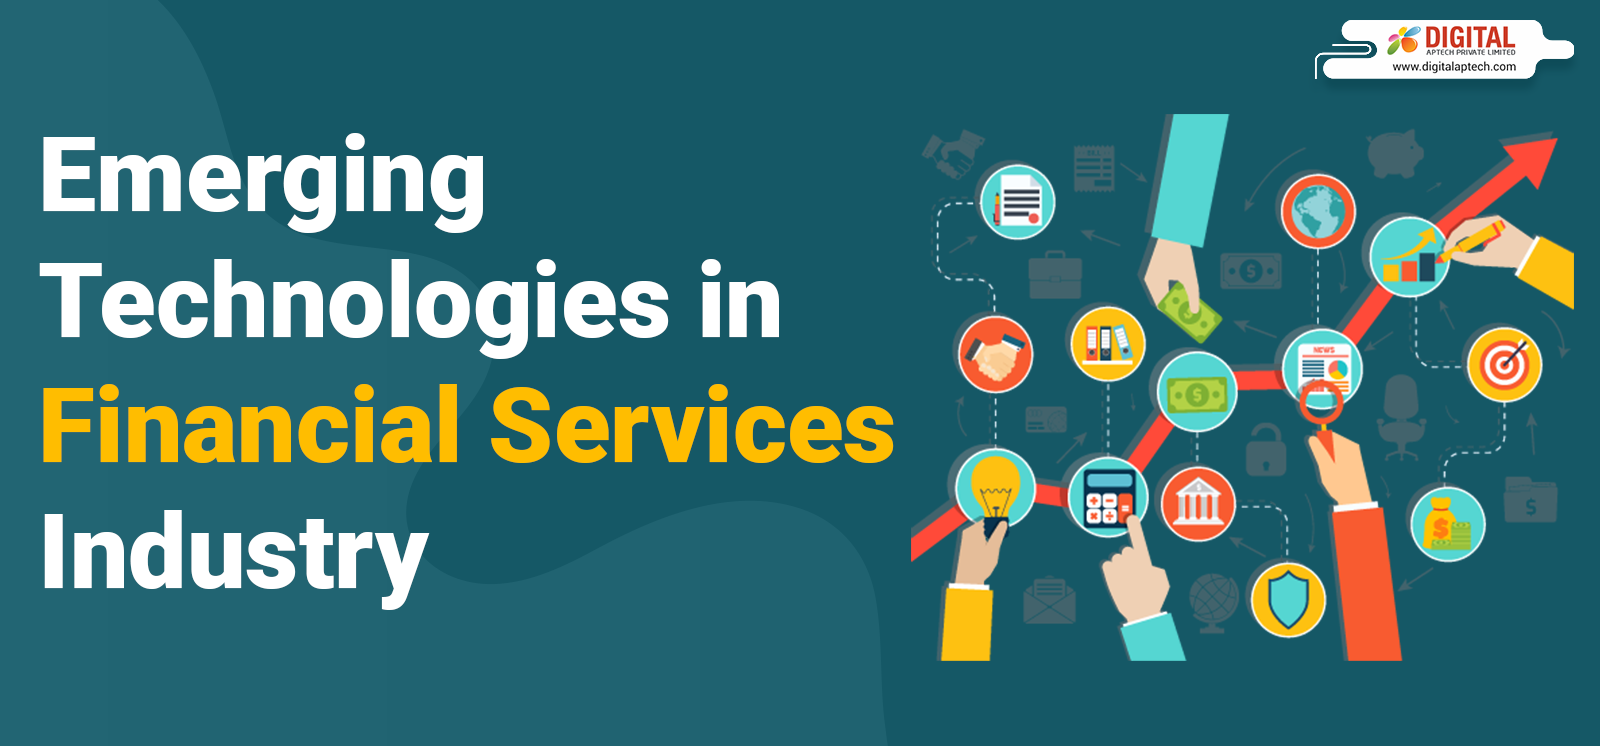 Emerging Technologies in Financial Services Industry: Top 7 trends